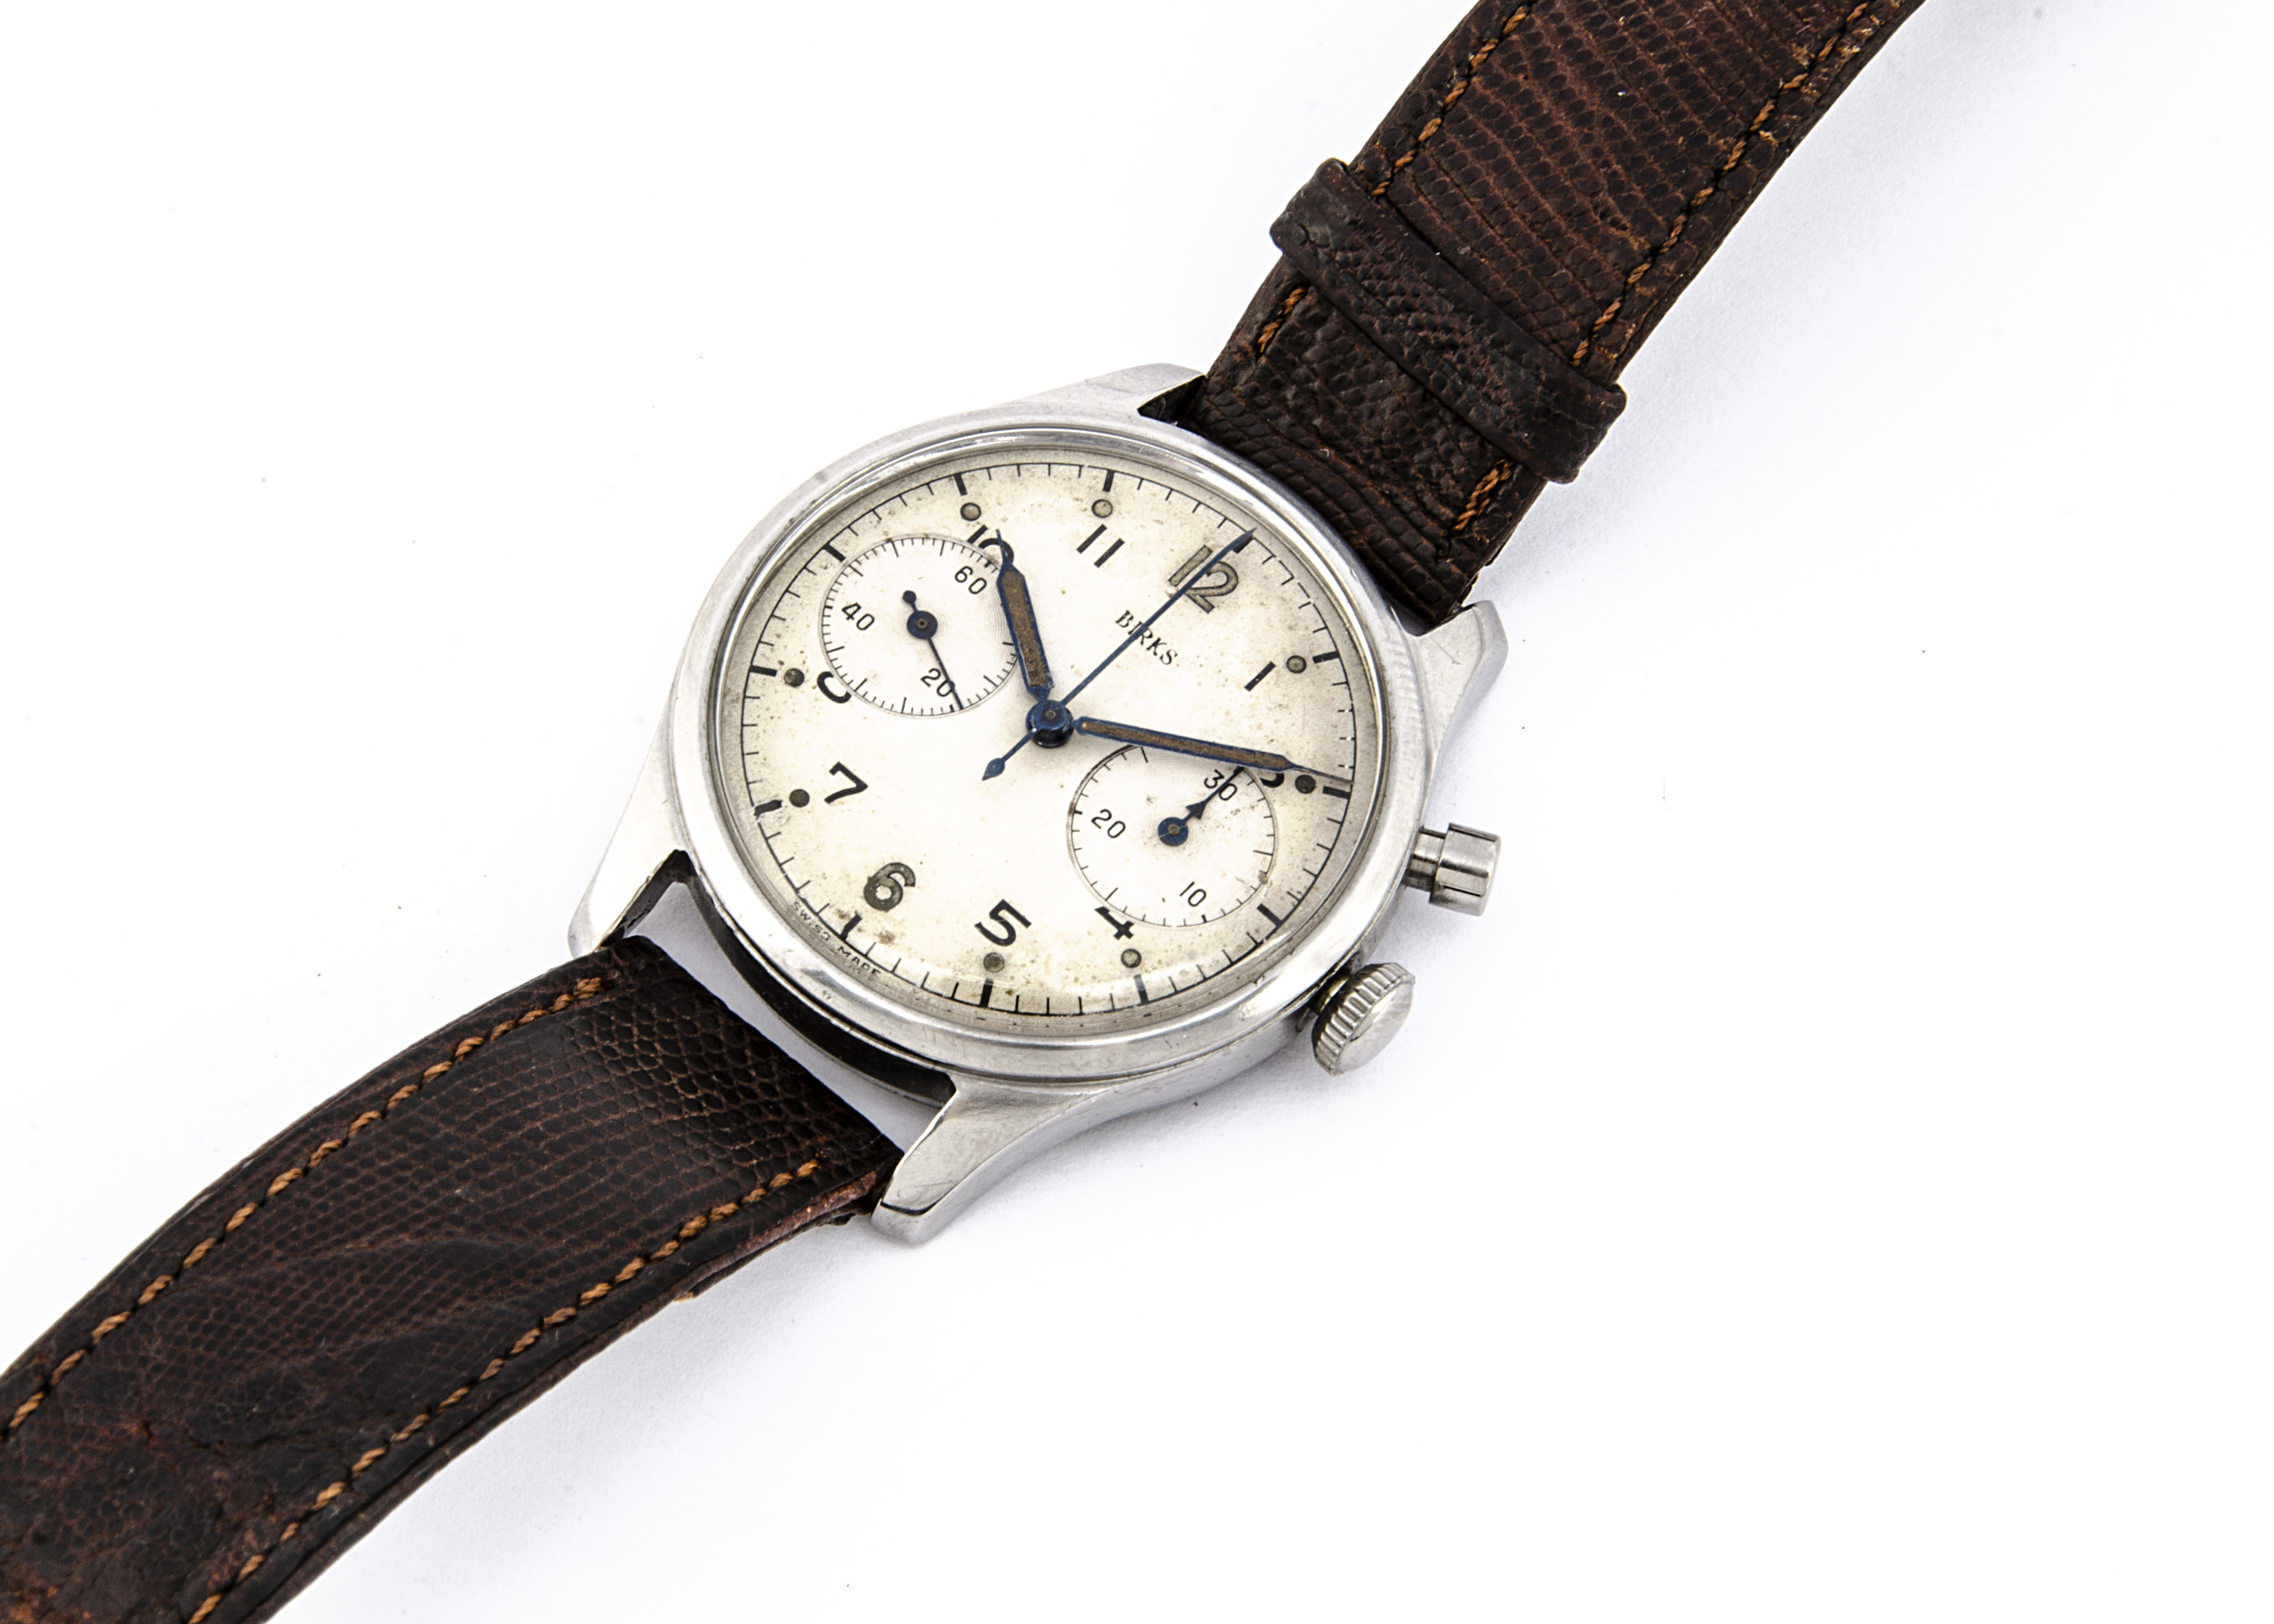 A c1959 Birks single button chronograph Royal Canadian Air Force stainless steel wristwatch, 36mm